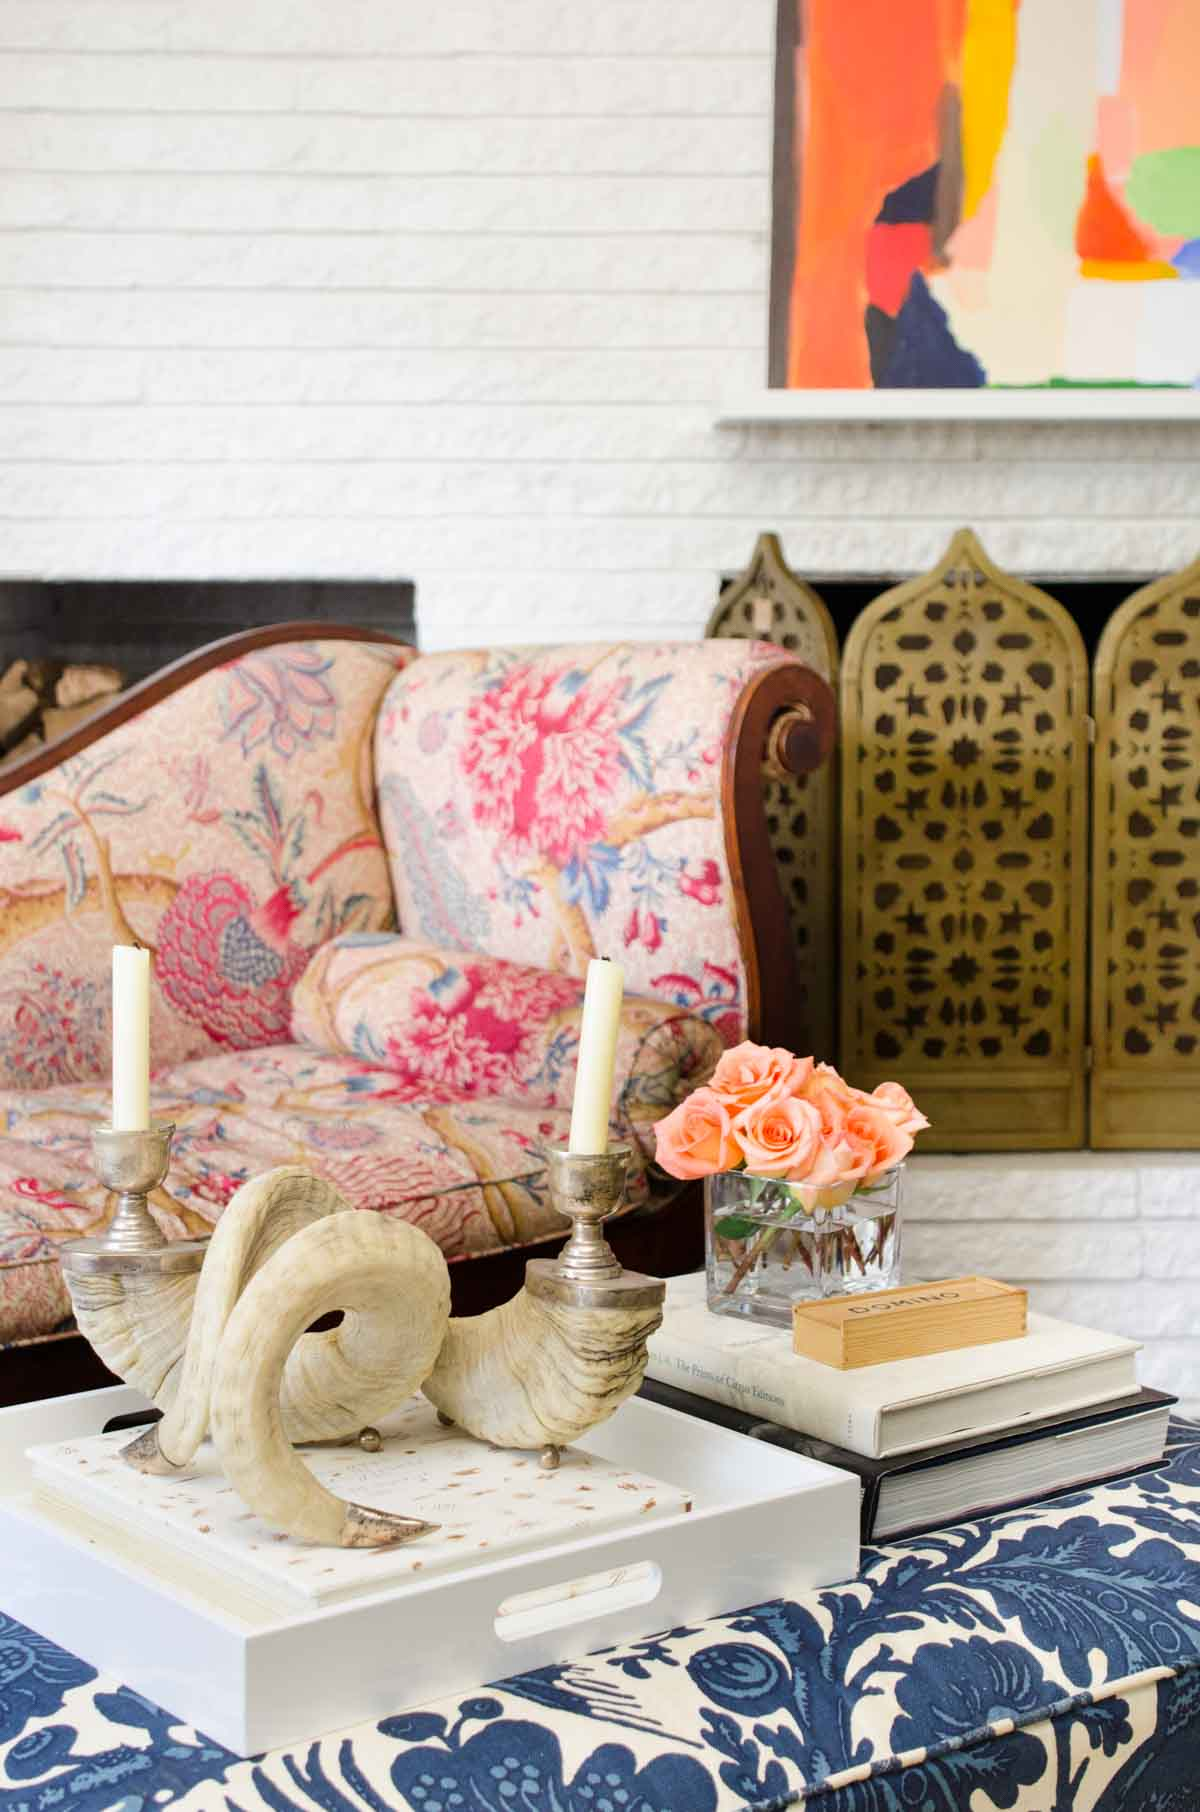 @thouswellblog's living room makeover, mixing traditional and modern design elements